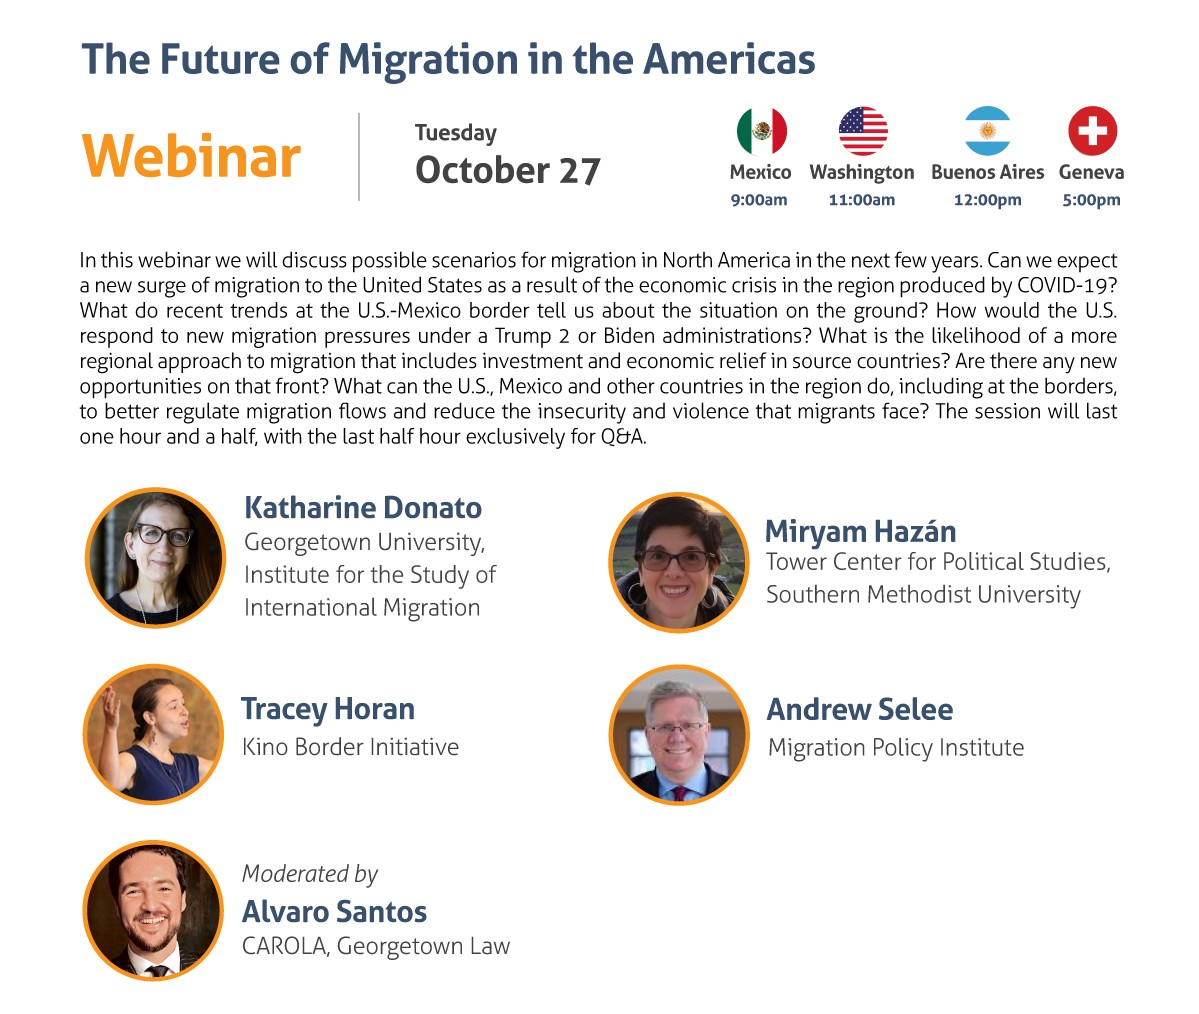 The Future of Migration in the Americas Webinar Tuesday, October 27 9:00 am Mexico City 11:00 am Washington, DC 12:00 pm Buenos Aires 5:00 pm Geneva In this webinar we will discuss possible scenarios for migration in North America in the next few years. Can we expect a new surge of migration to the United States as a result of the economic crisis in the region produced by COVID-19? What do recent trends at the U.S.-Mexico border tell us about the situation on the ground? How would the U.S. respond to new migration pressures under a Trump 2 or Biden administrations? What is the likelihood of a more regional approach to migration that includes investment and economic relief in source countries? Are there any new opportunities on that front? What can the U.S., Mexico and other countries in the region do, including at the borders, to better regulate migration flows and reduce the insecurity and violence that migrants face? The session will last one hour and a half, with the last half hour exclusively for Q&A. - Katharine Donato, Georgetown University, Institute for the Study of International Migration - Miryam Hazán, Tower Center for Political Studies, Southern Methodist University - Tracey Horan, Kino Border Initiative - Andrew Selee, Migration Policy Institute Moderated by: Alvaro Santos, CAROLA, Georgetown Law